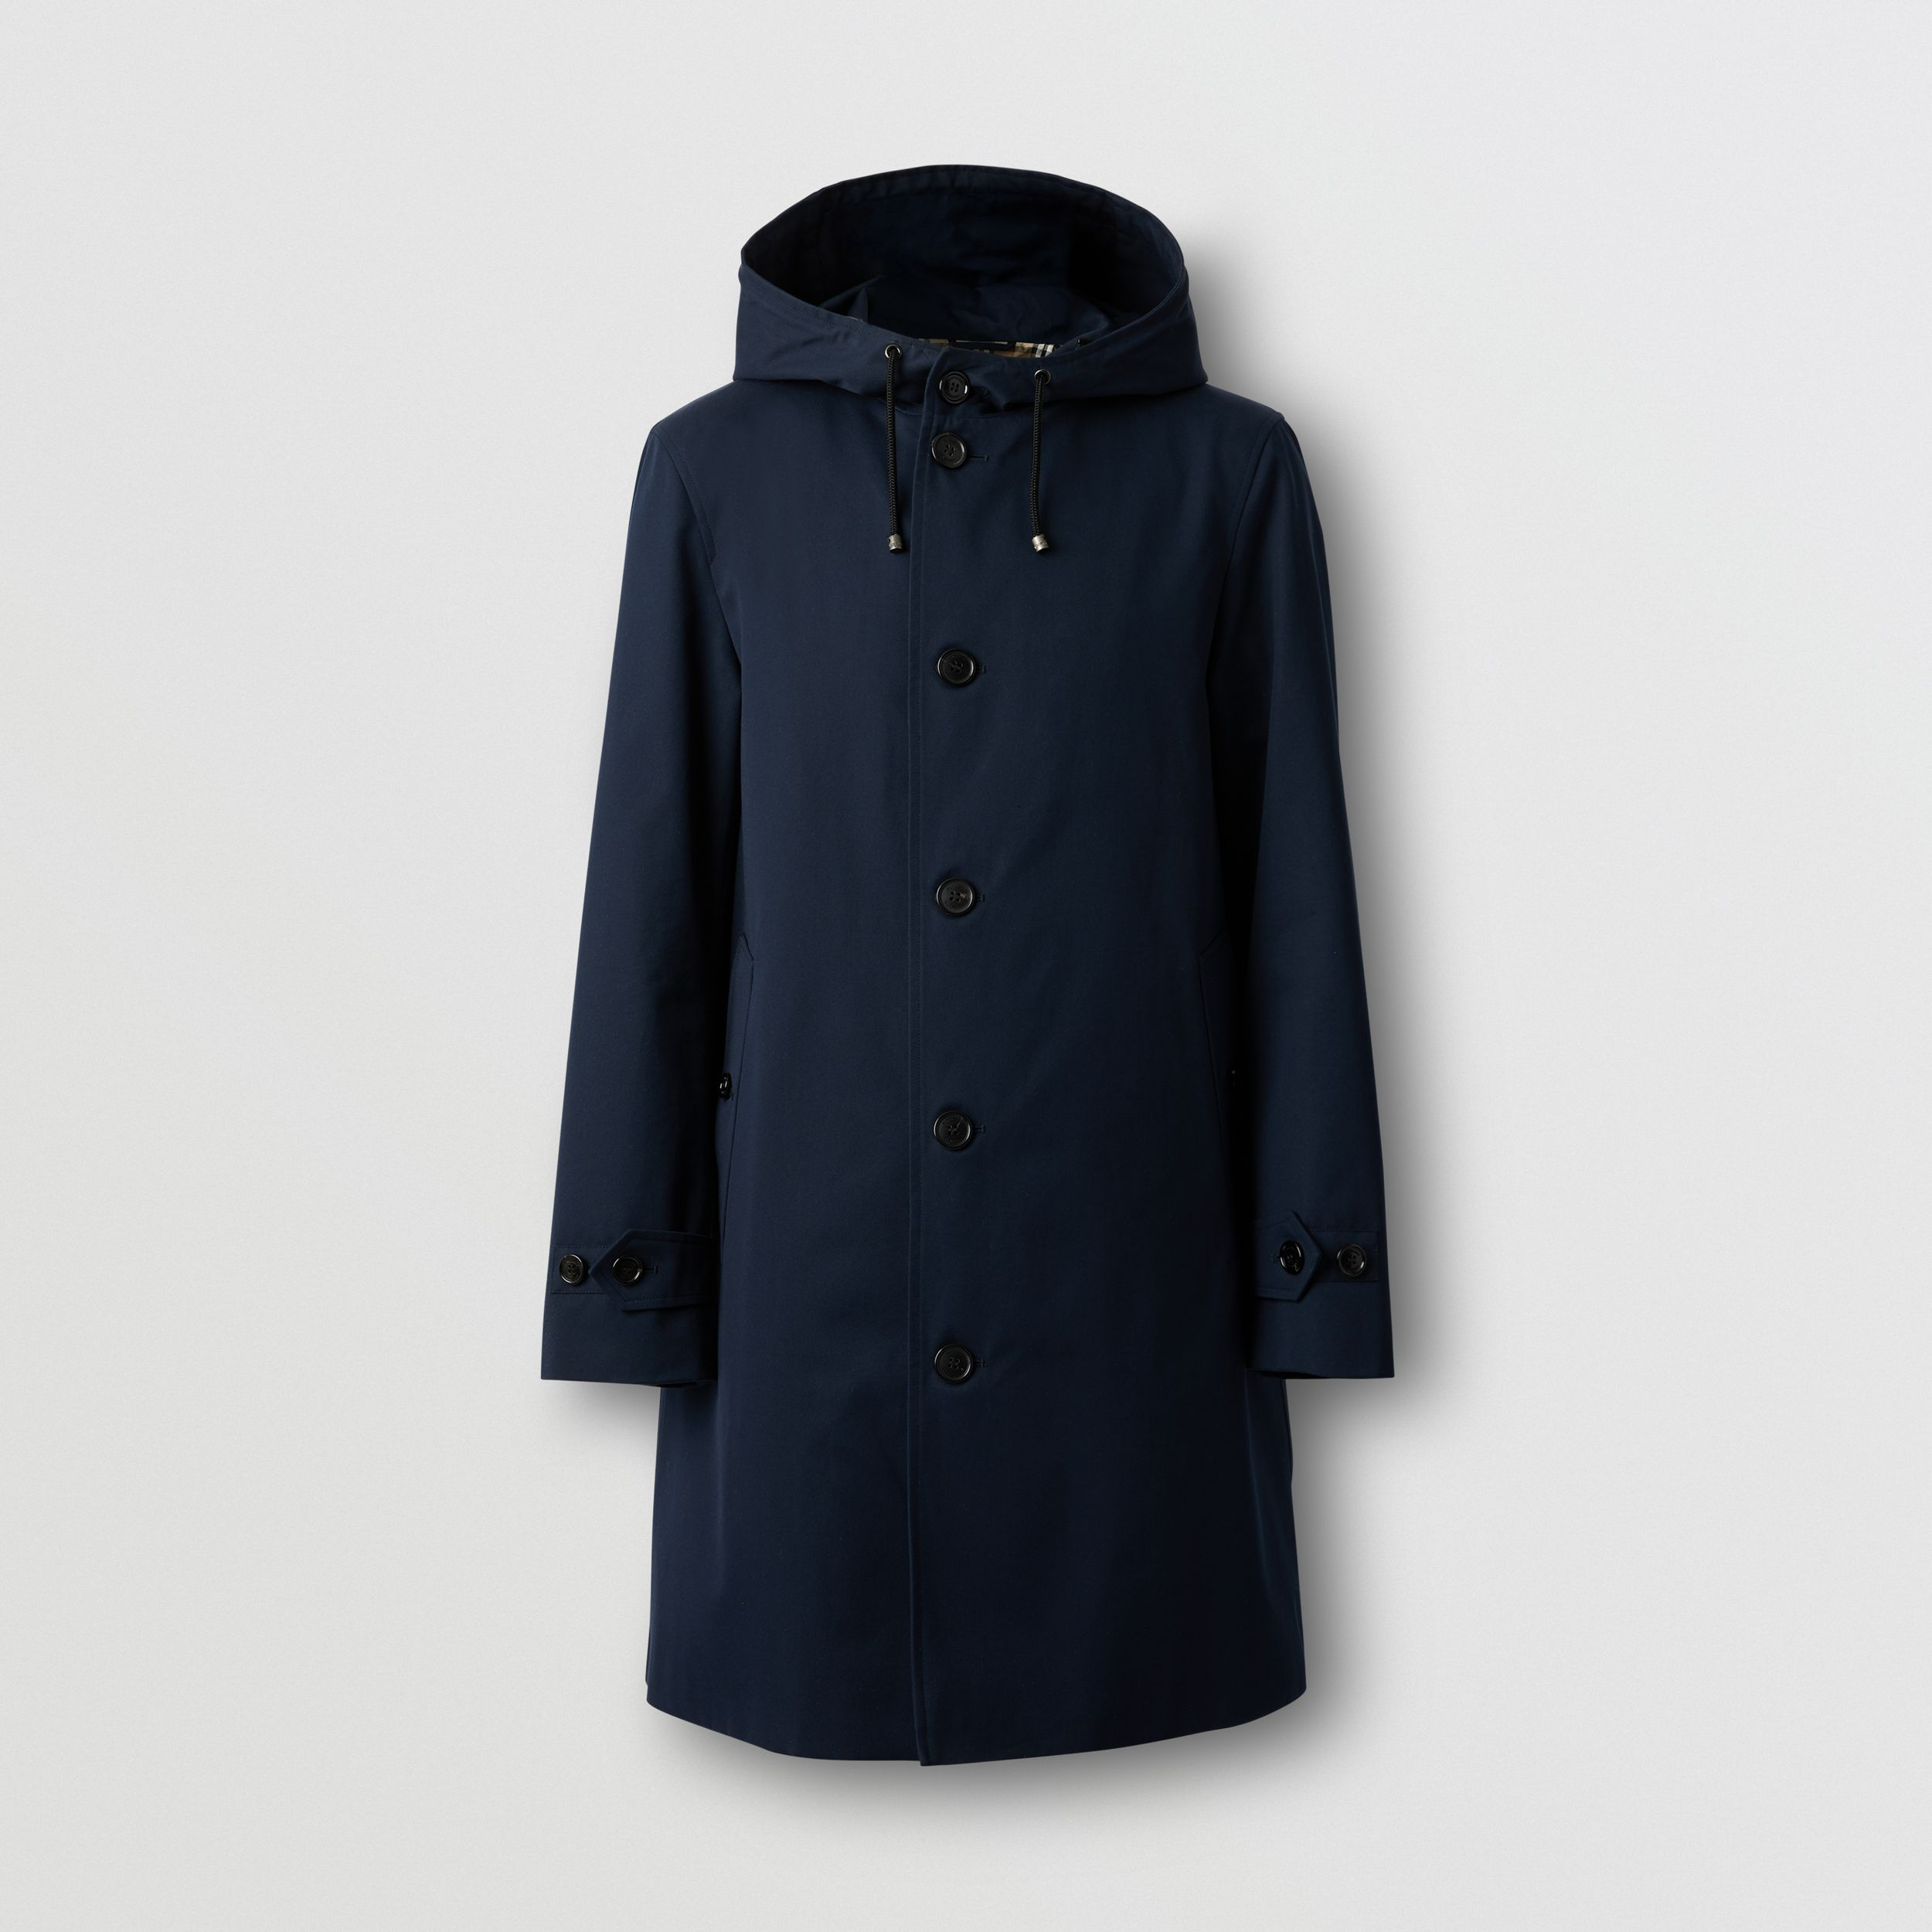 Cotton Gabardine Hooded Coat in Midnight - Men | Burberry - 4